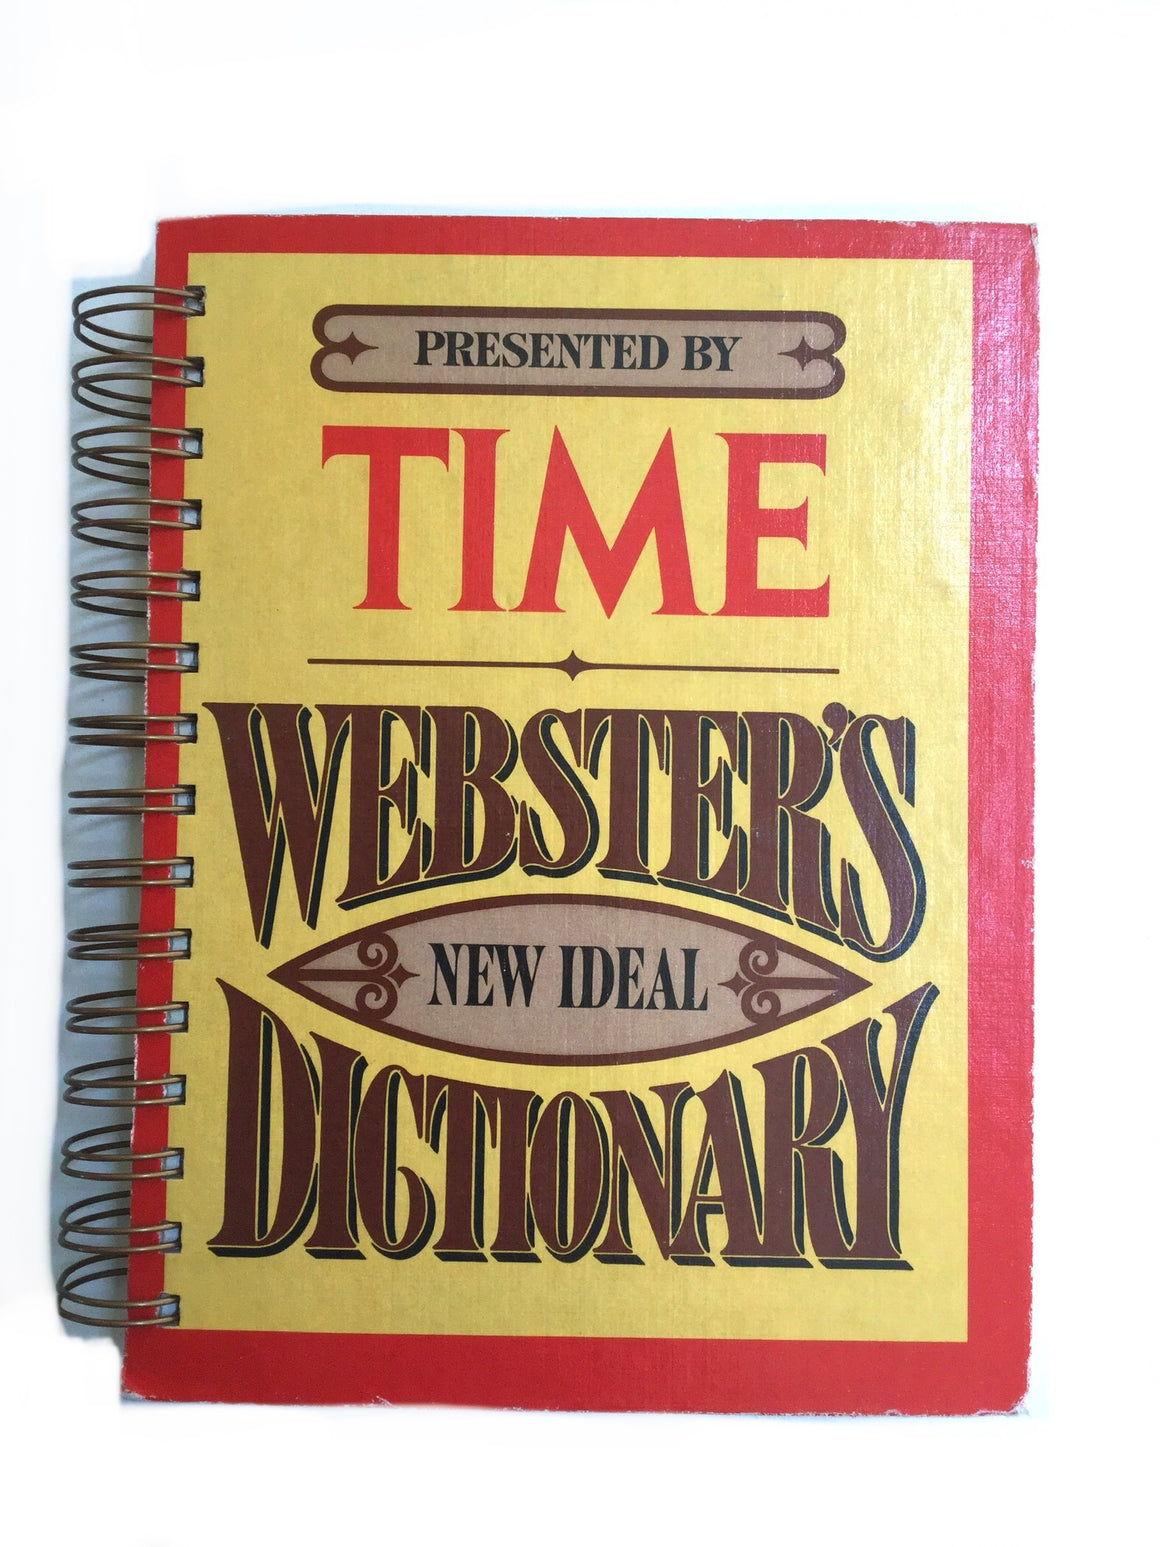 Time Webster's Dictionary-Red Barn Collections